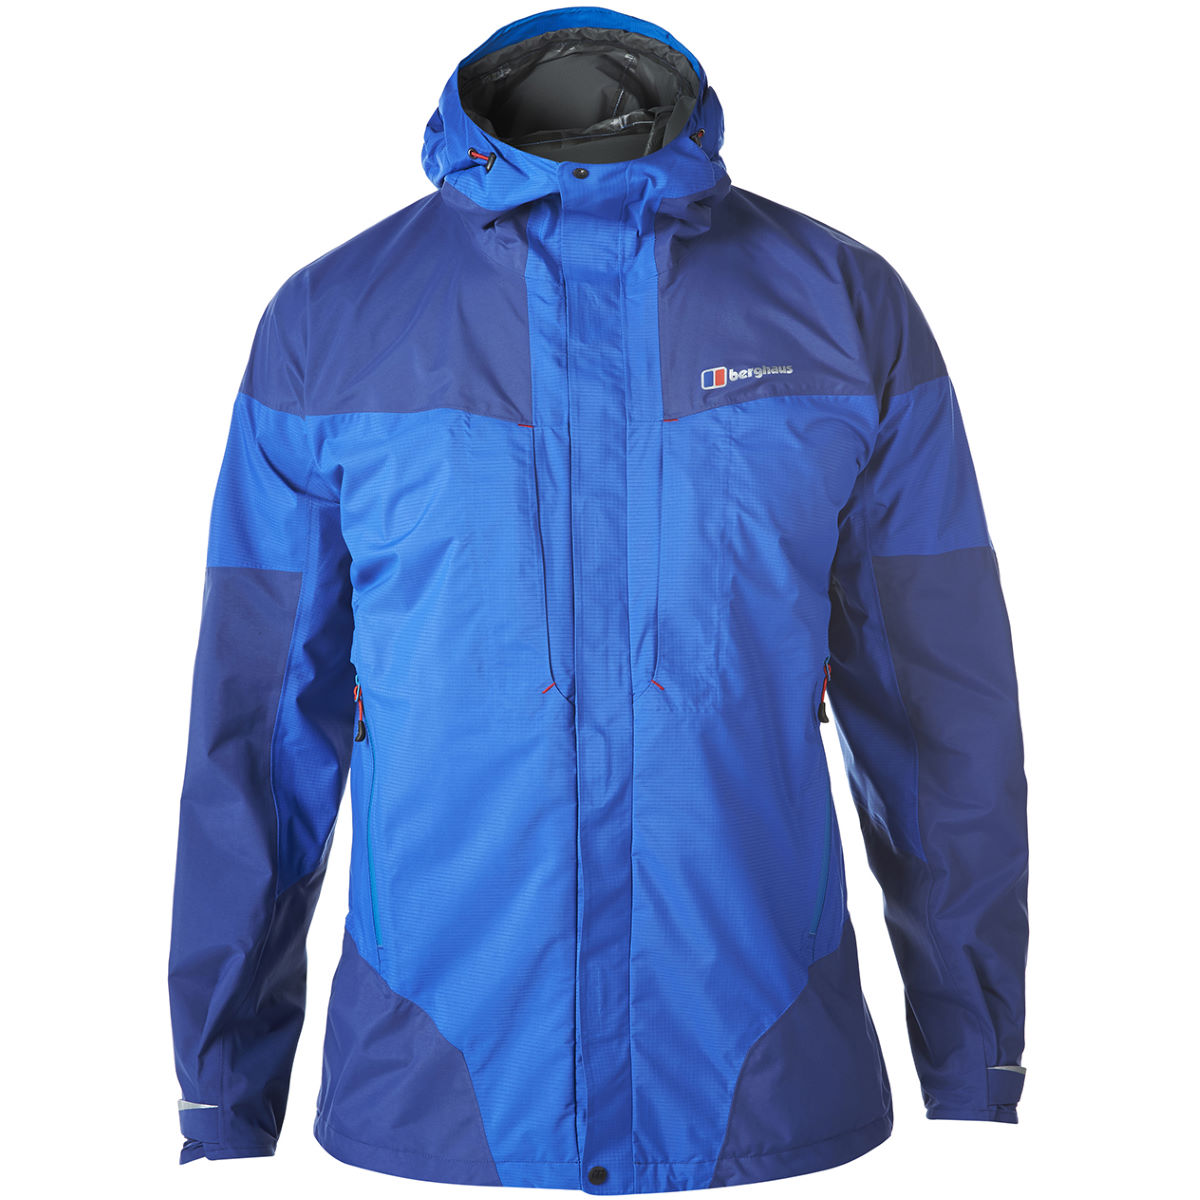 Berghaus light trek hydroshell jacket waterproof jackets intense blue aw16 421533ibt